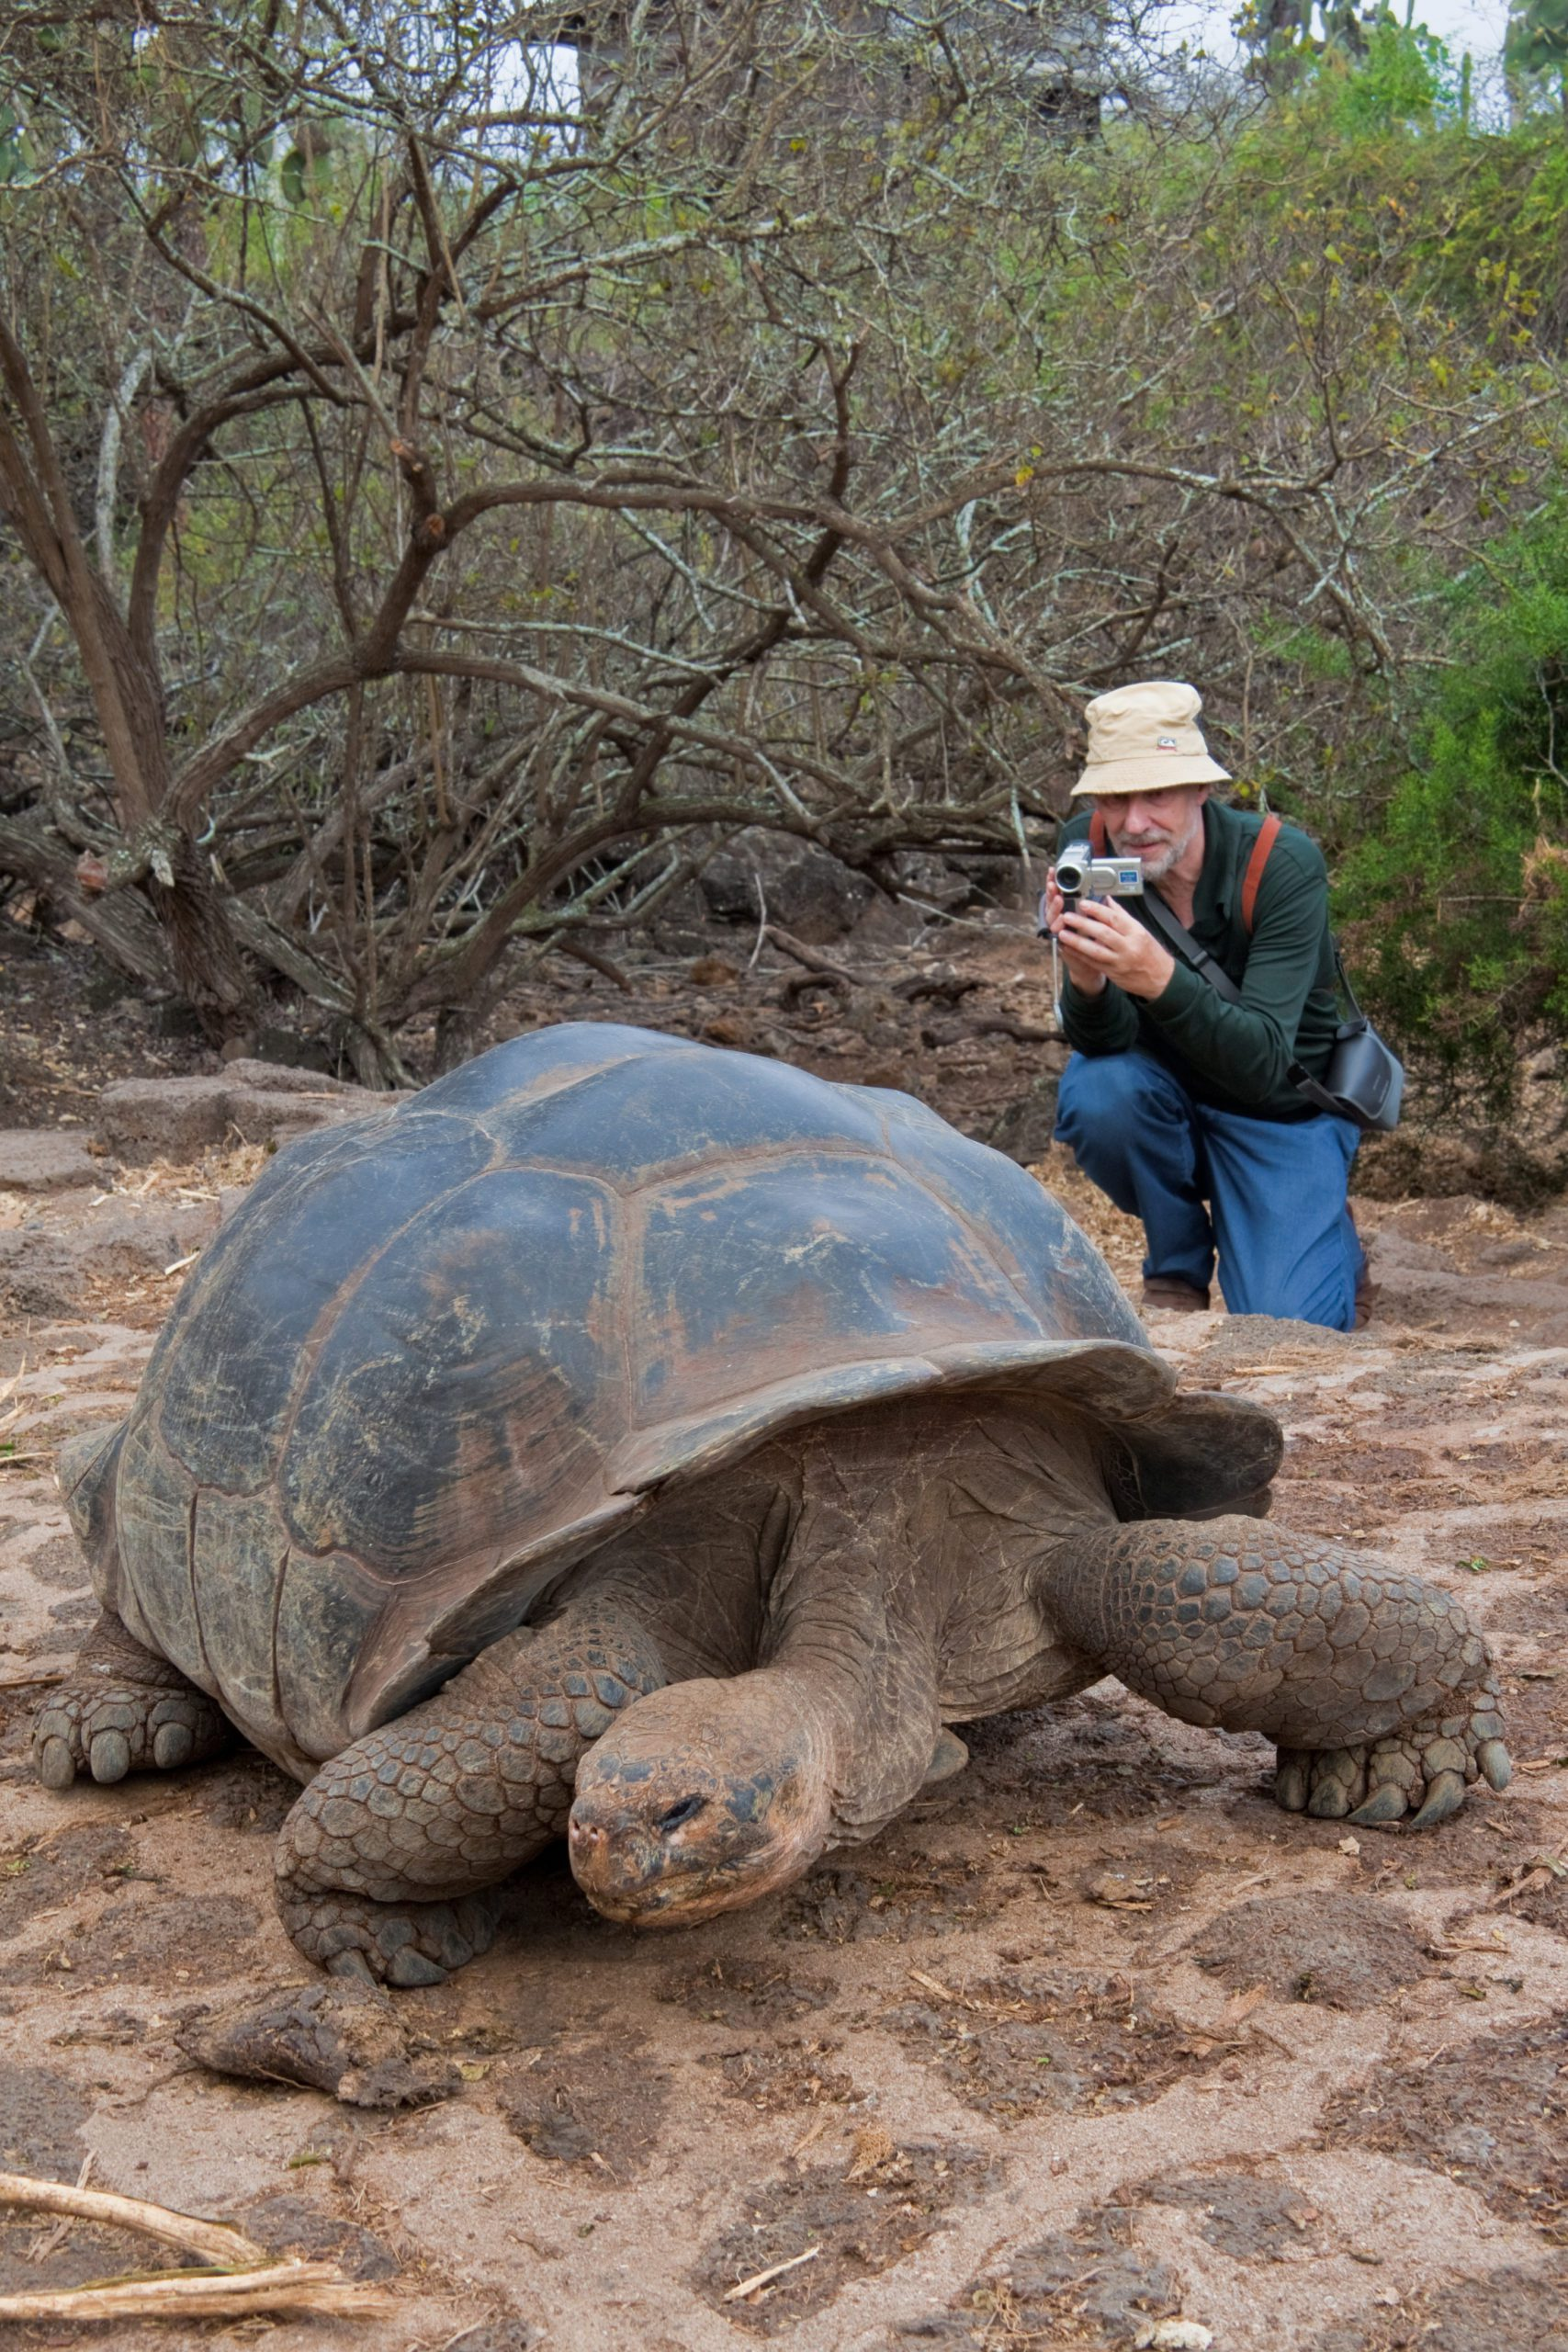 giant tortoise in sand and man taking video